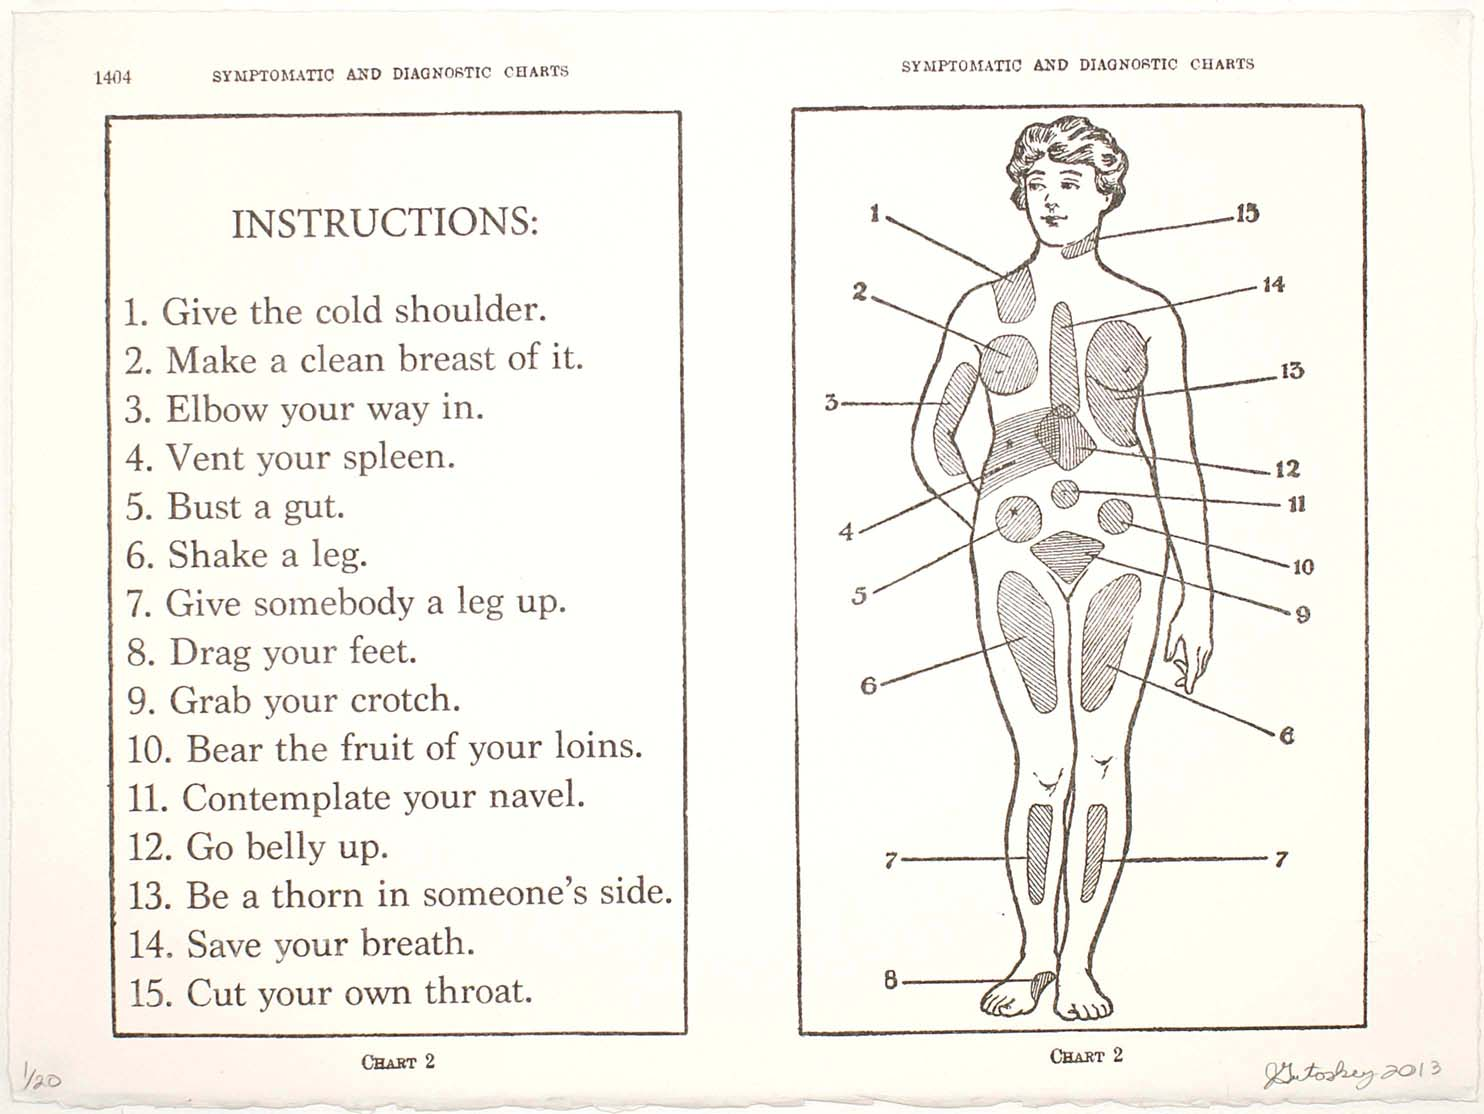 Instructions for Life (female)